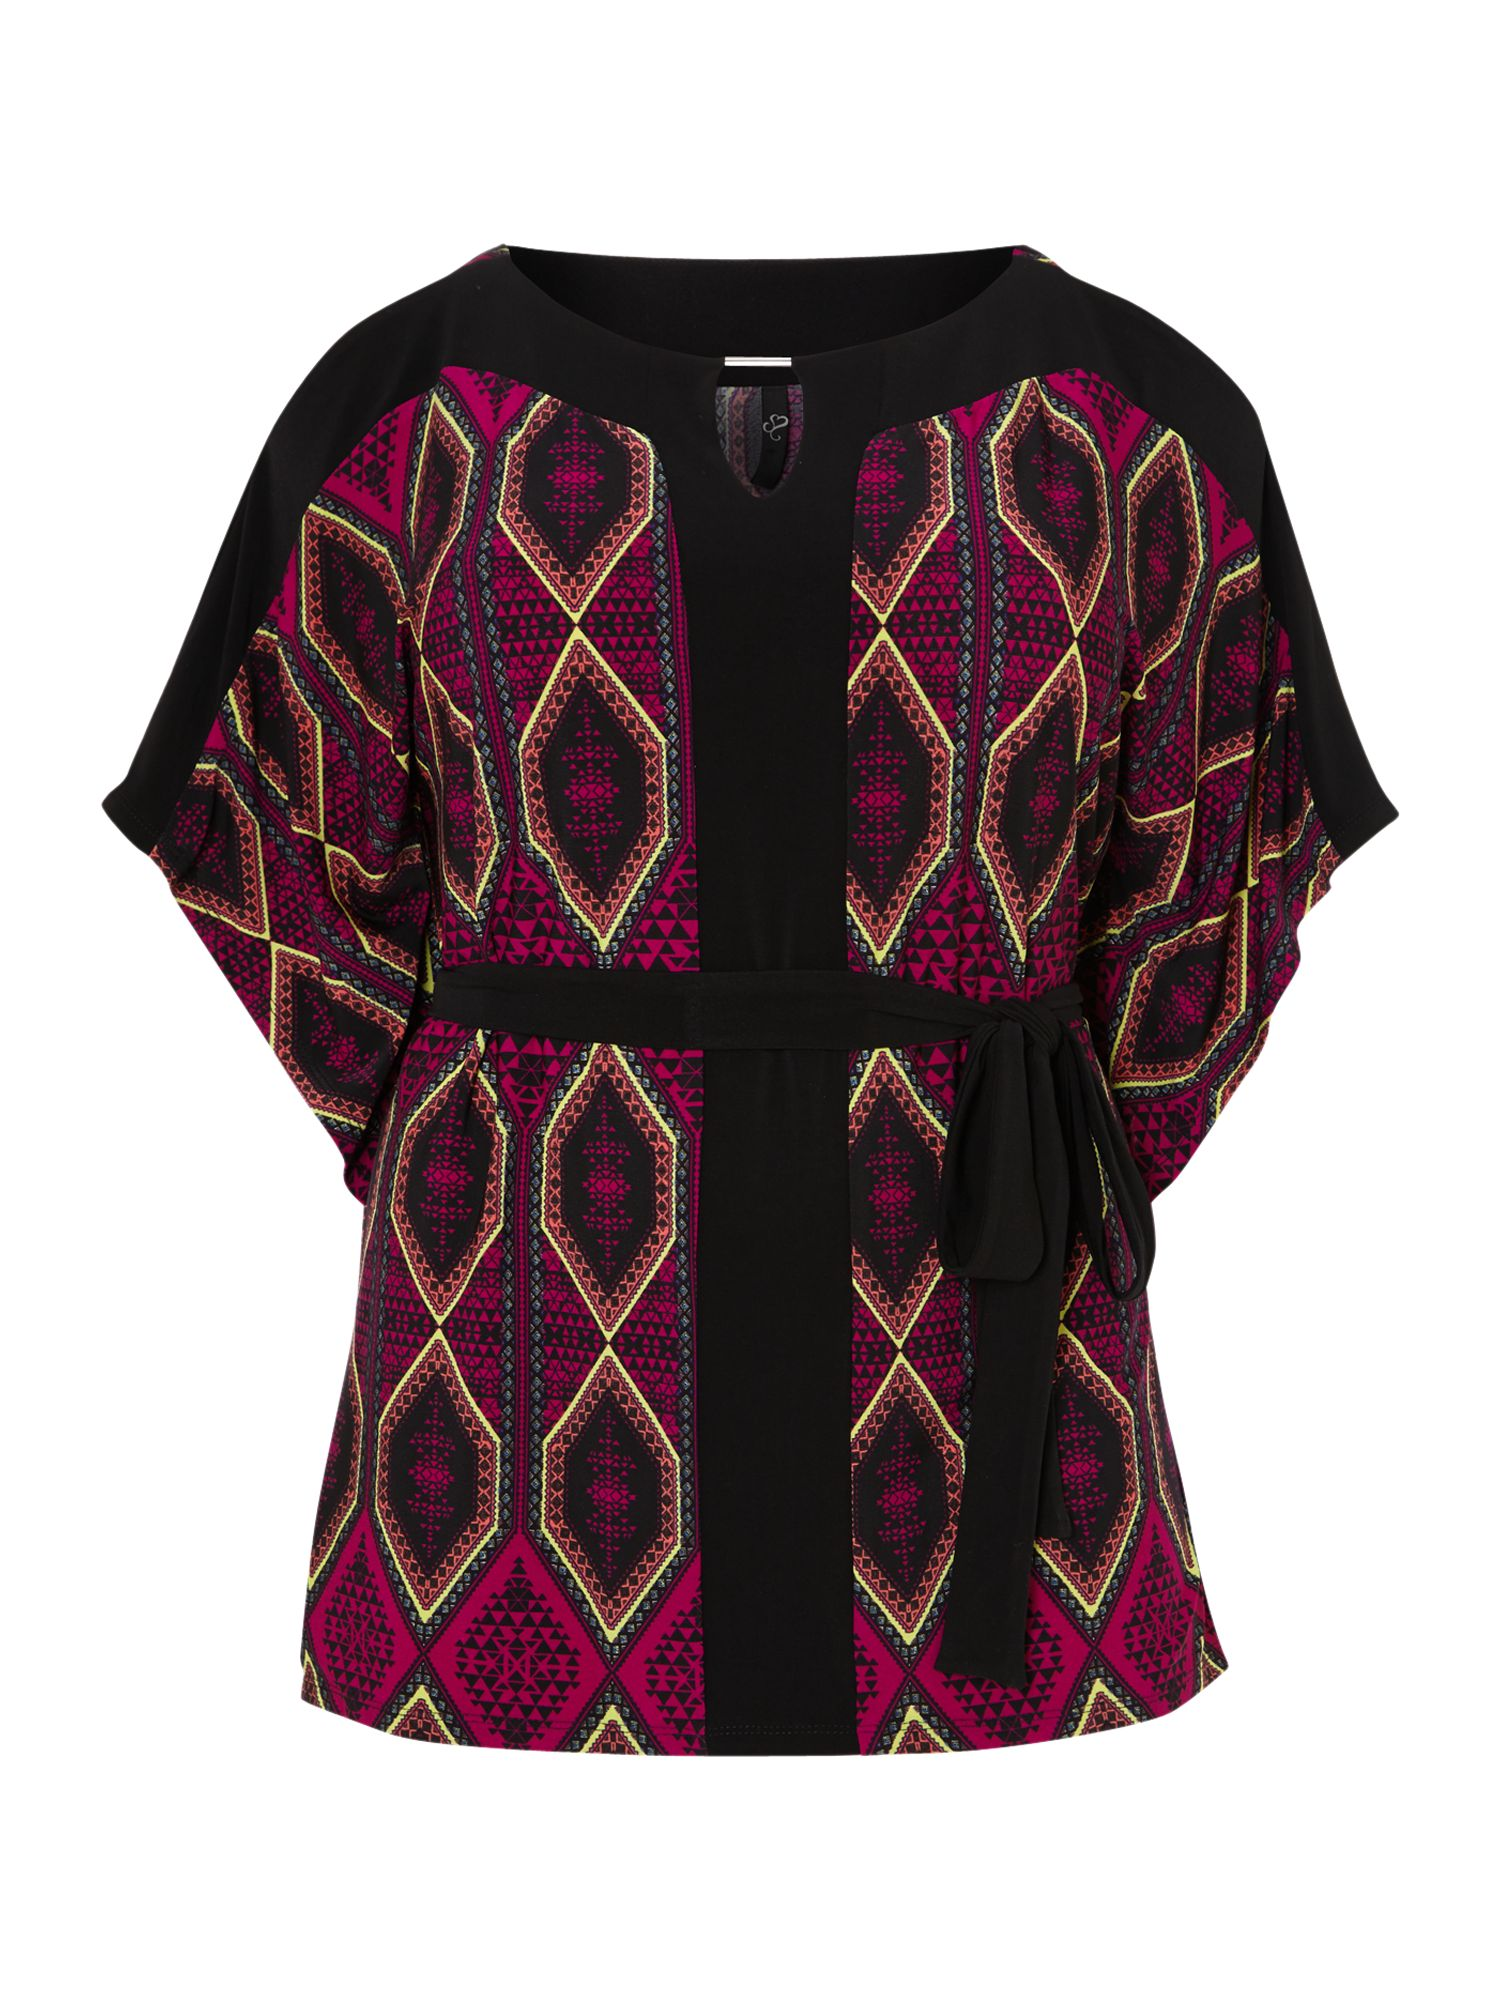 Black and purple diamond print square top